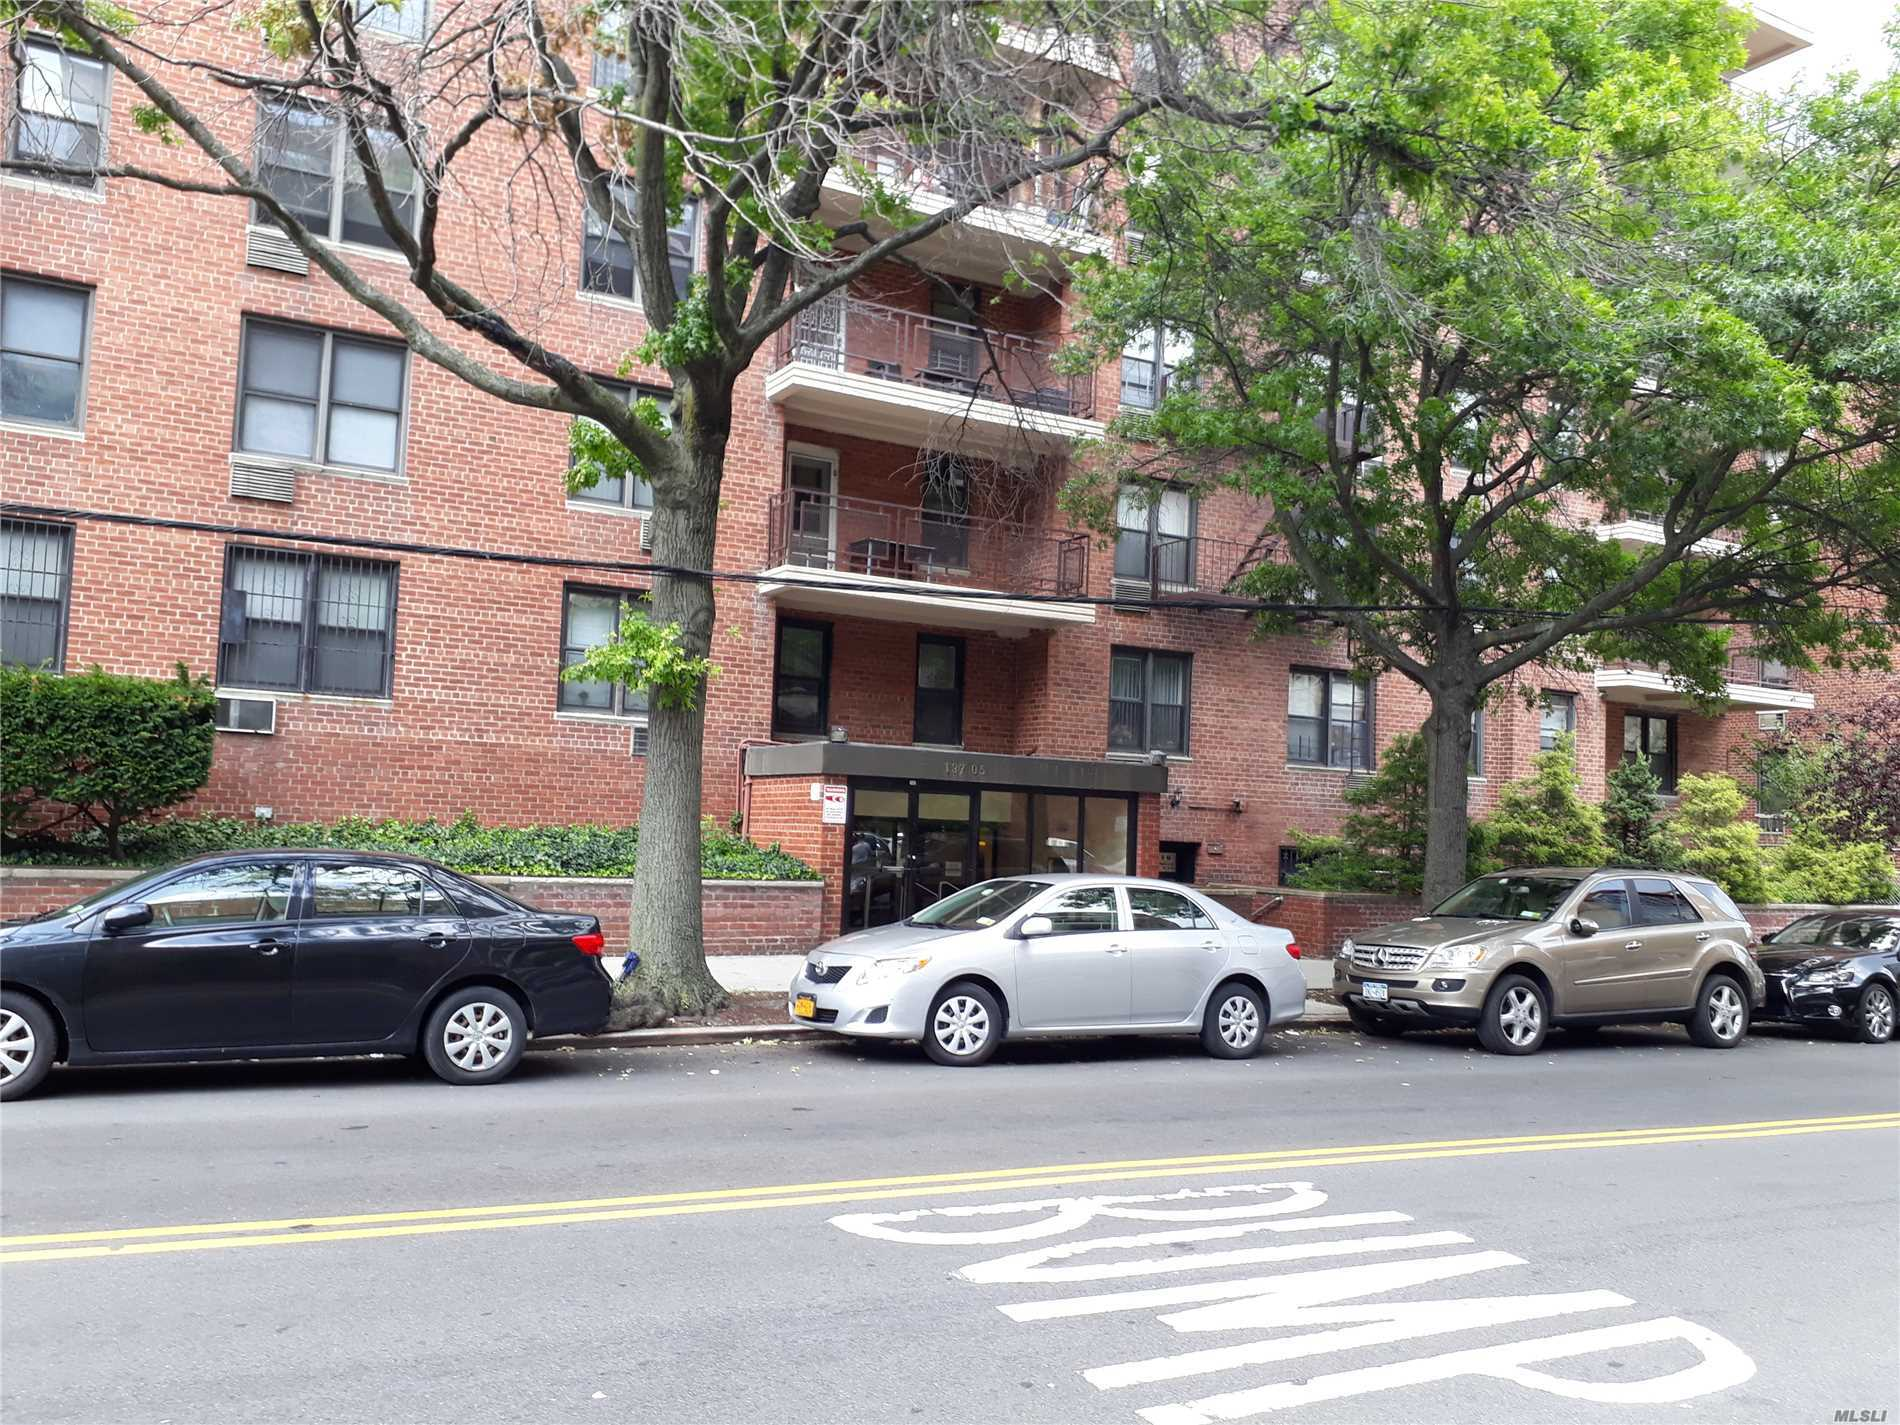 Location, Location, Location , Building Located In Downtown Flushing,  Minutes Walk To Lirr,  #7 Subway , Buses, Supermarket, Shops, Convenience To All.